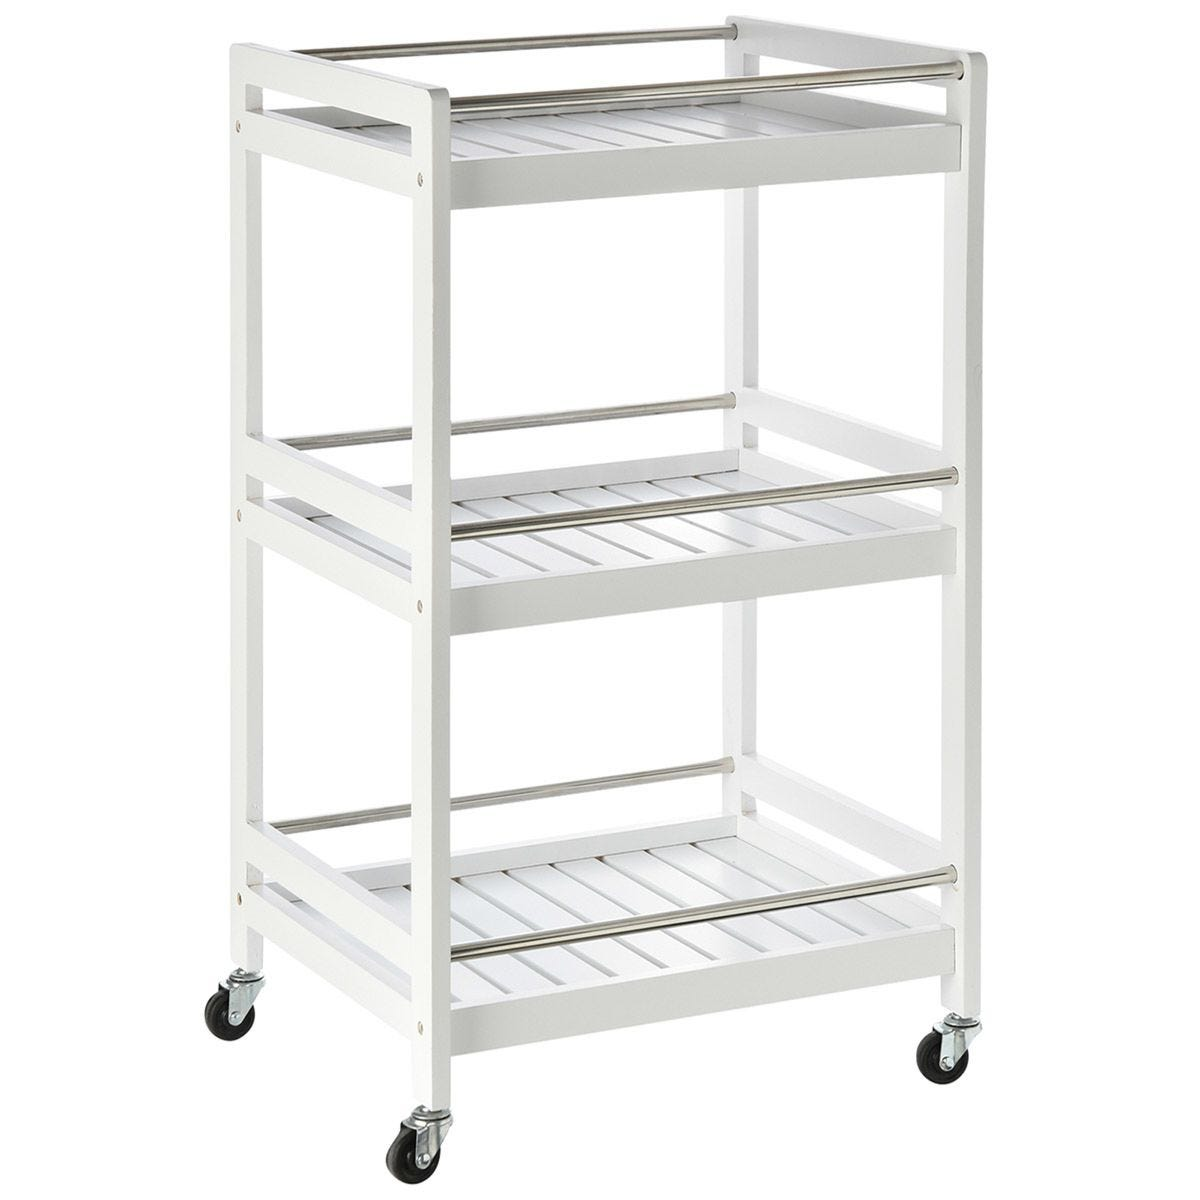 Pine Wood 3-Tier Kitchen Trolley - White